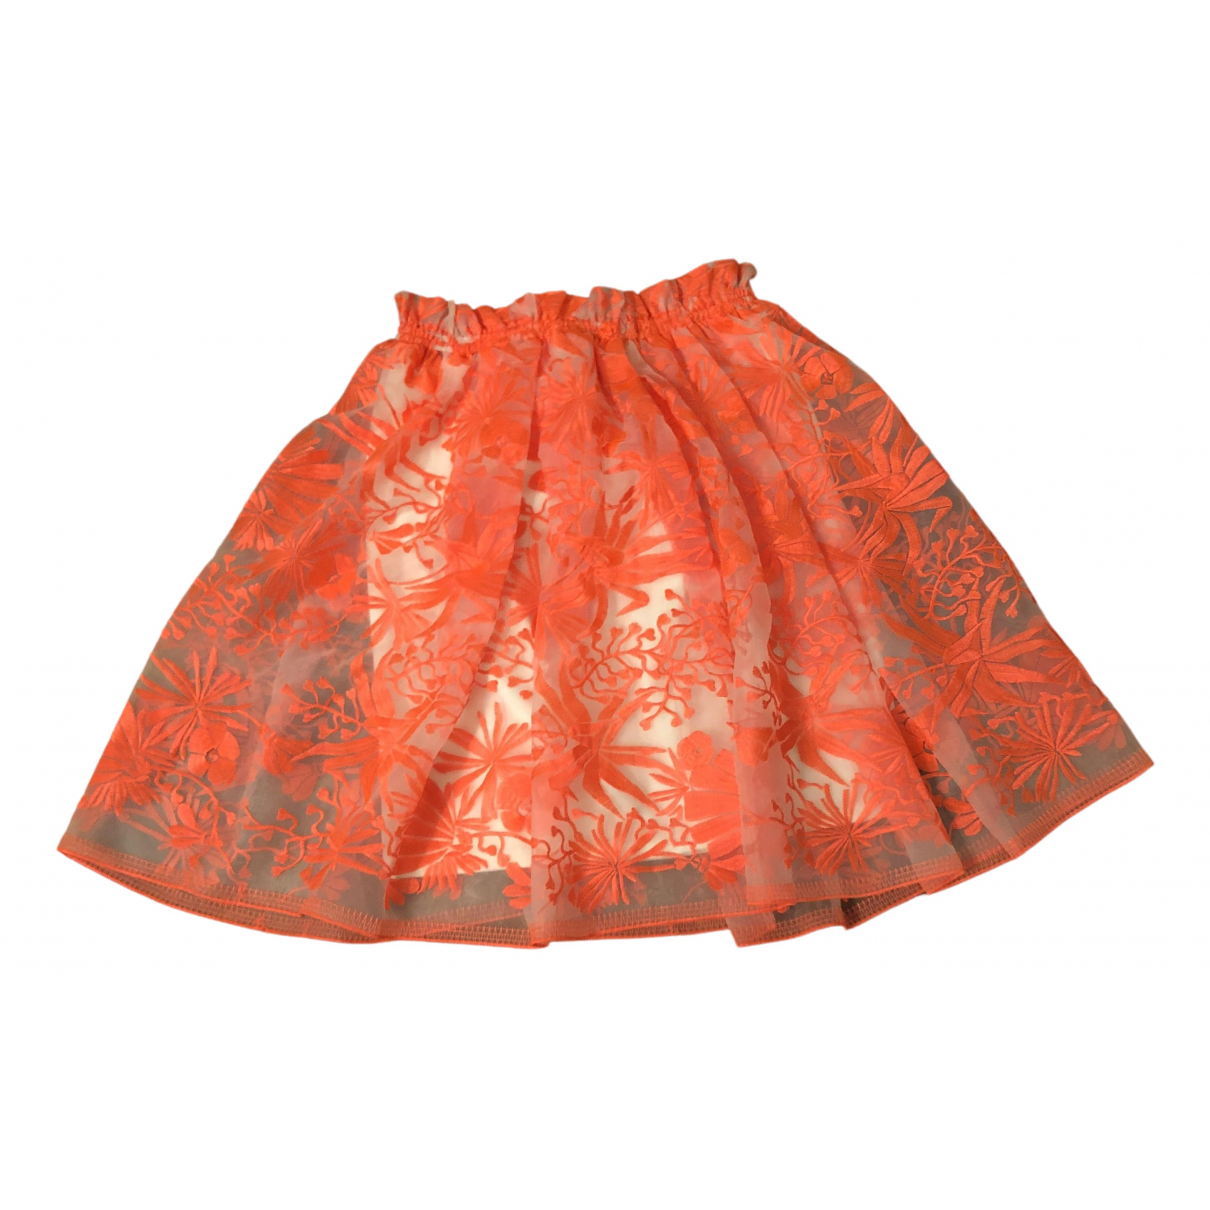 Maje \N Orange skirt for Women 36 FR